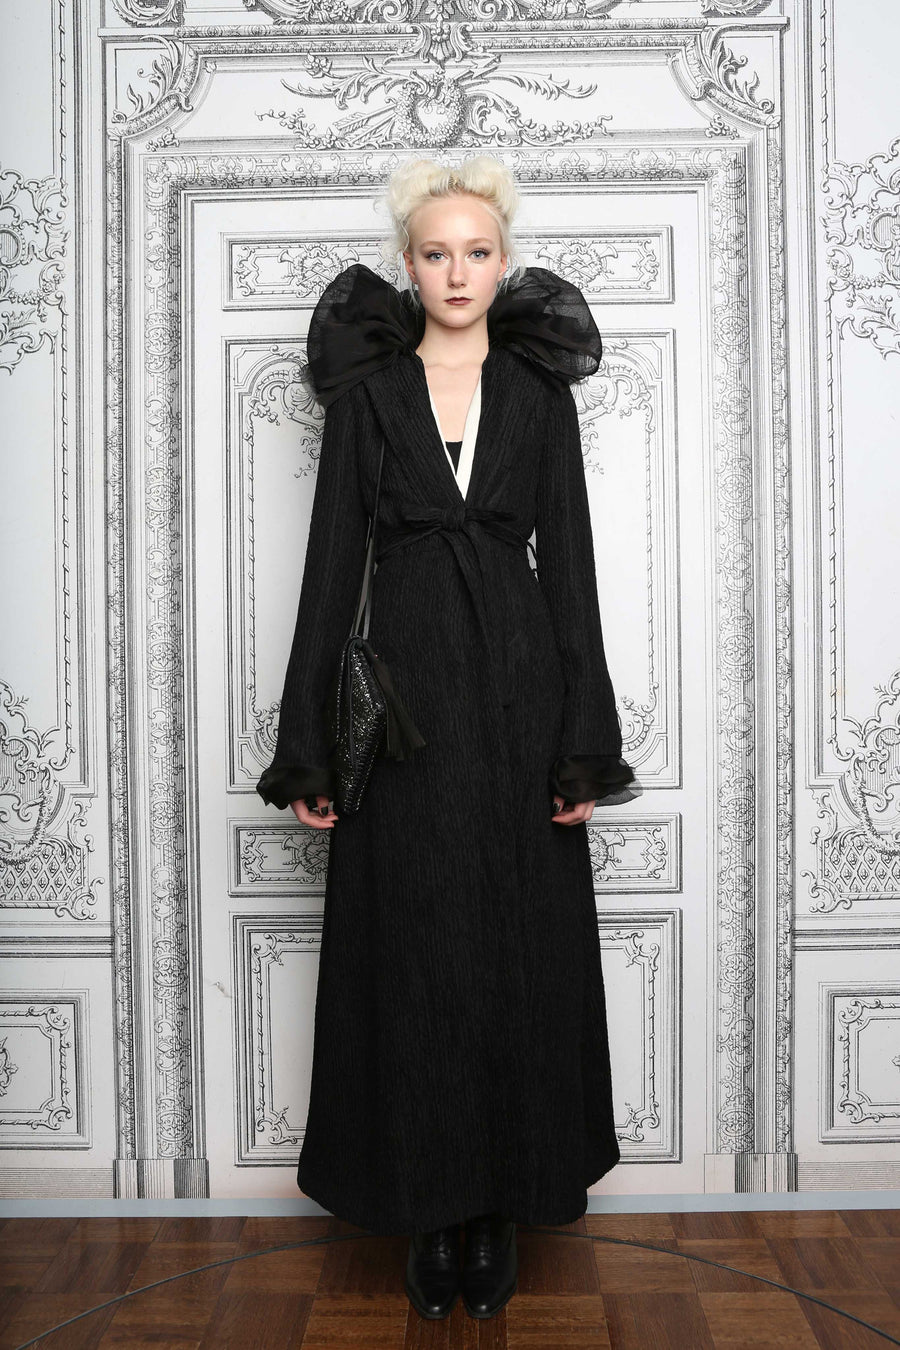 Juliette Fazekas IMG Model The Sage Coat Carl Jung Living Doll AW14 Runway Fashion Show Wendy Nichol Clothing Designer Handmade in NYC New York City Made to Order Made to Measure Custom Tailoring Bespoke Long Textured Silk Jacket Coat Spring Fall detachable Edwardian Victorian Elizabethan Collar White Silk Lining Witch Wizard